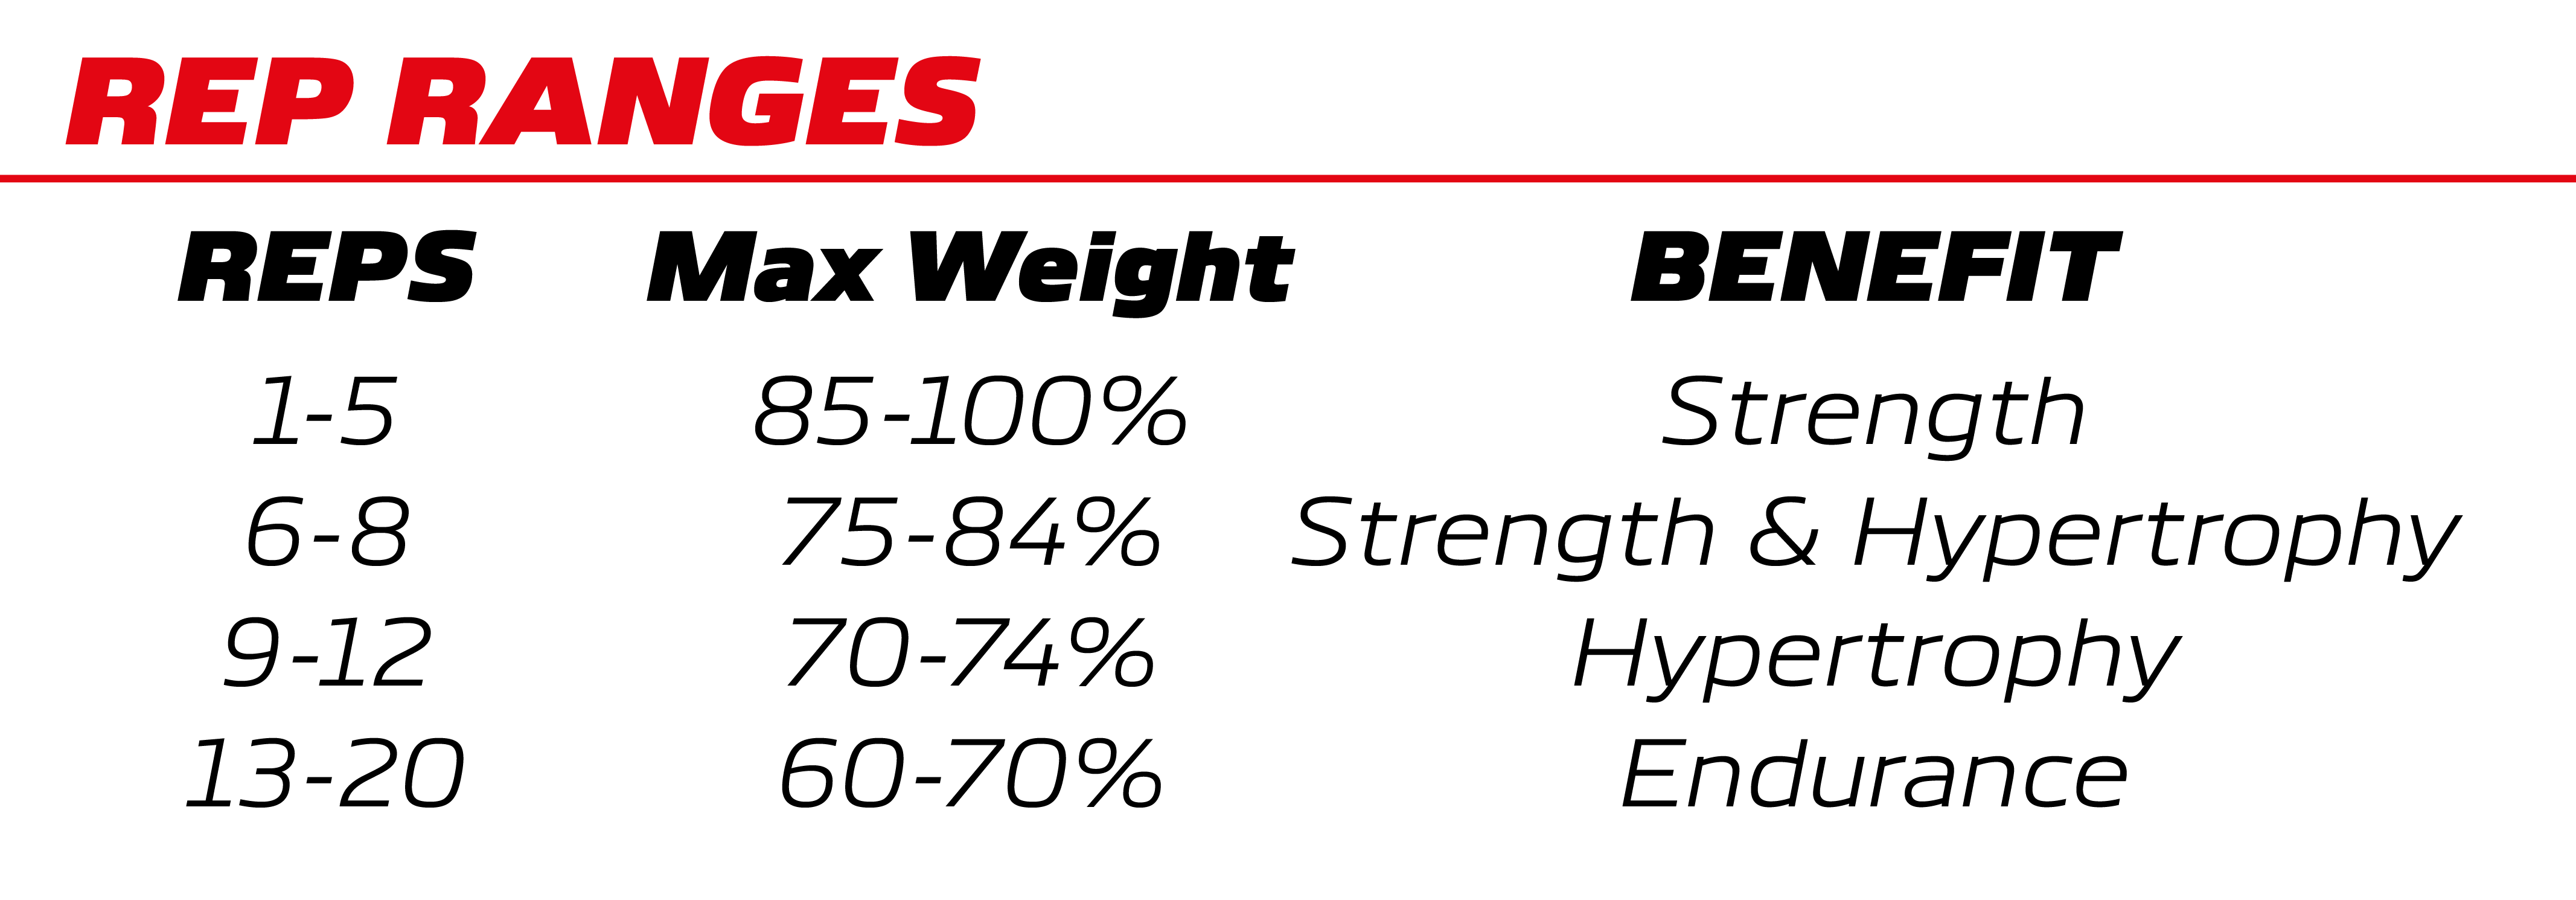 graphic showing Rep ranges with max weights and purposes to training